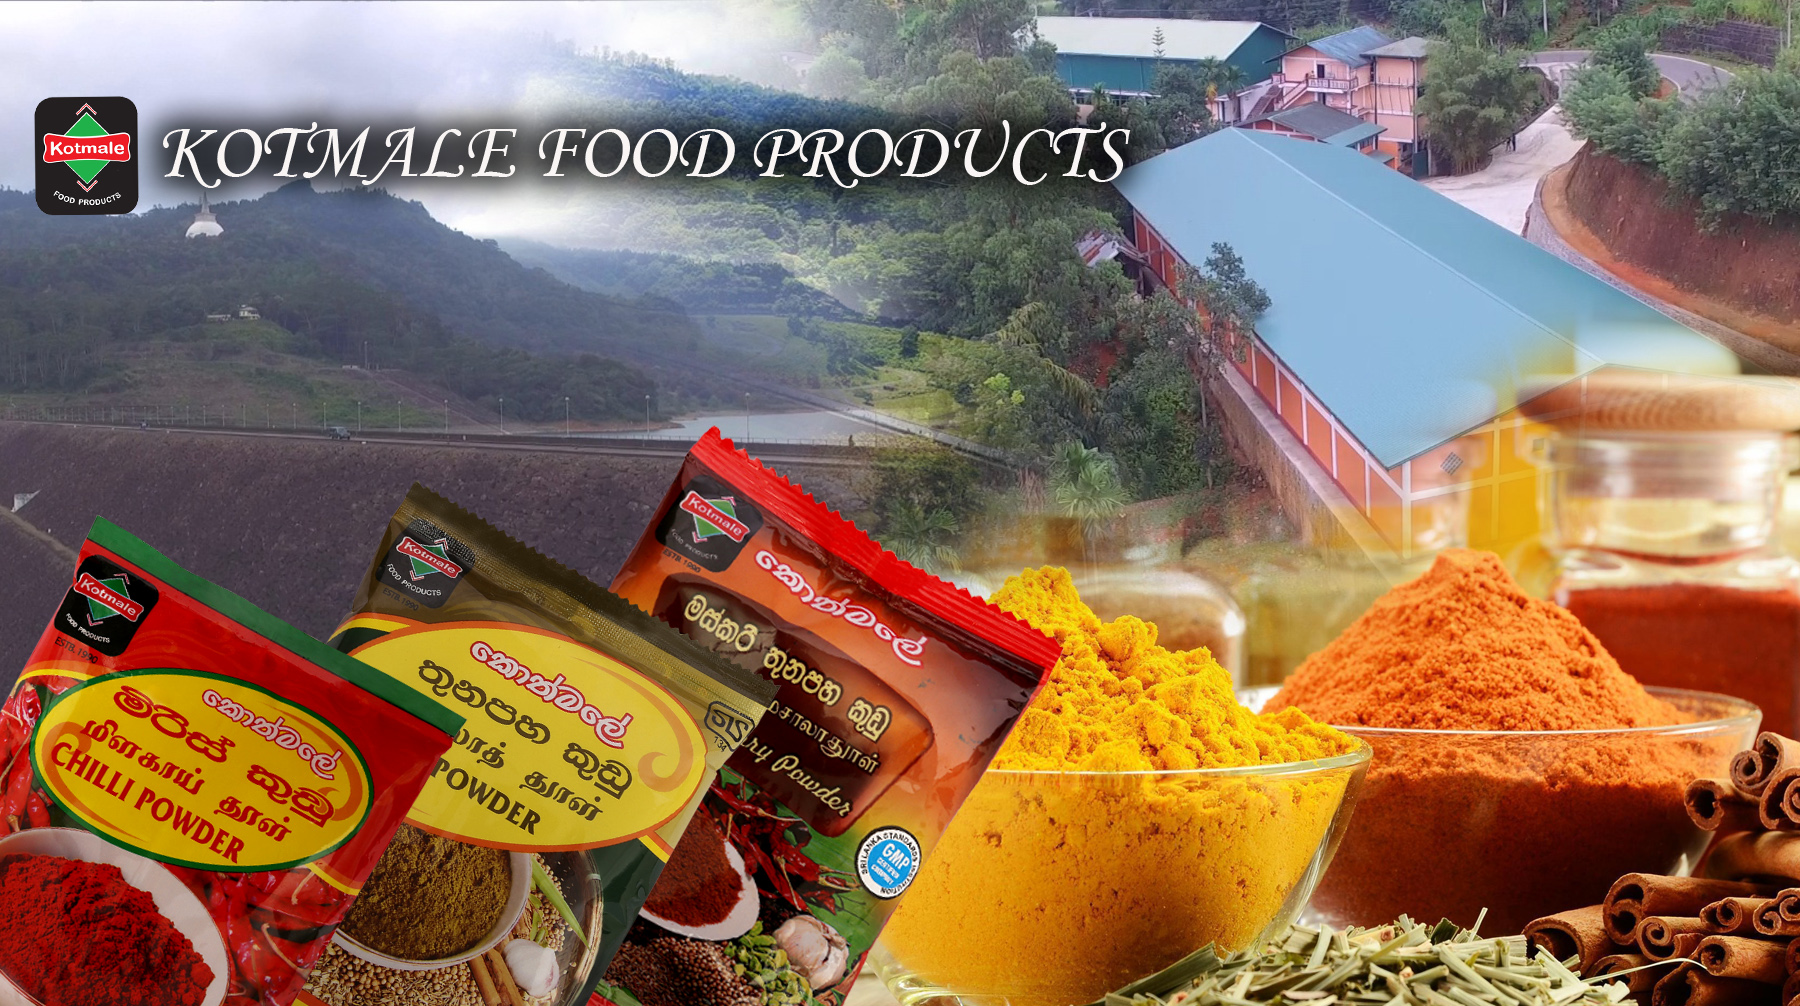 Kotmale Food Products